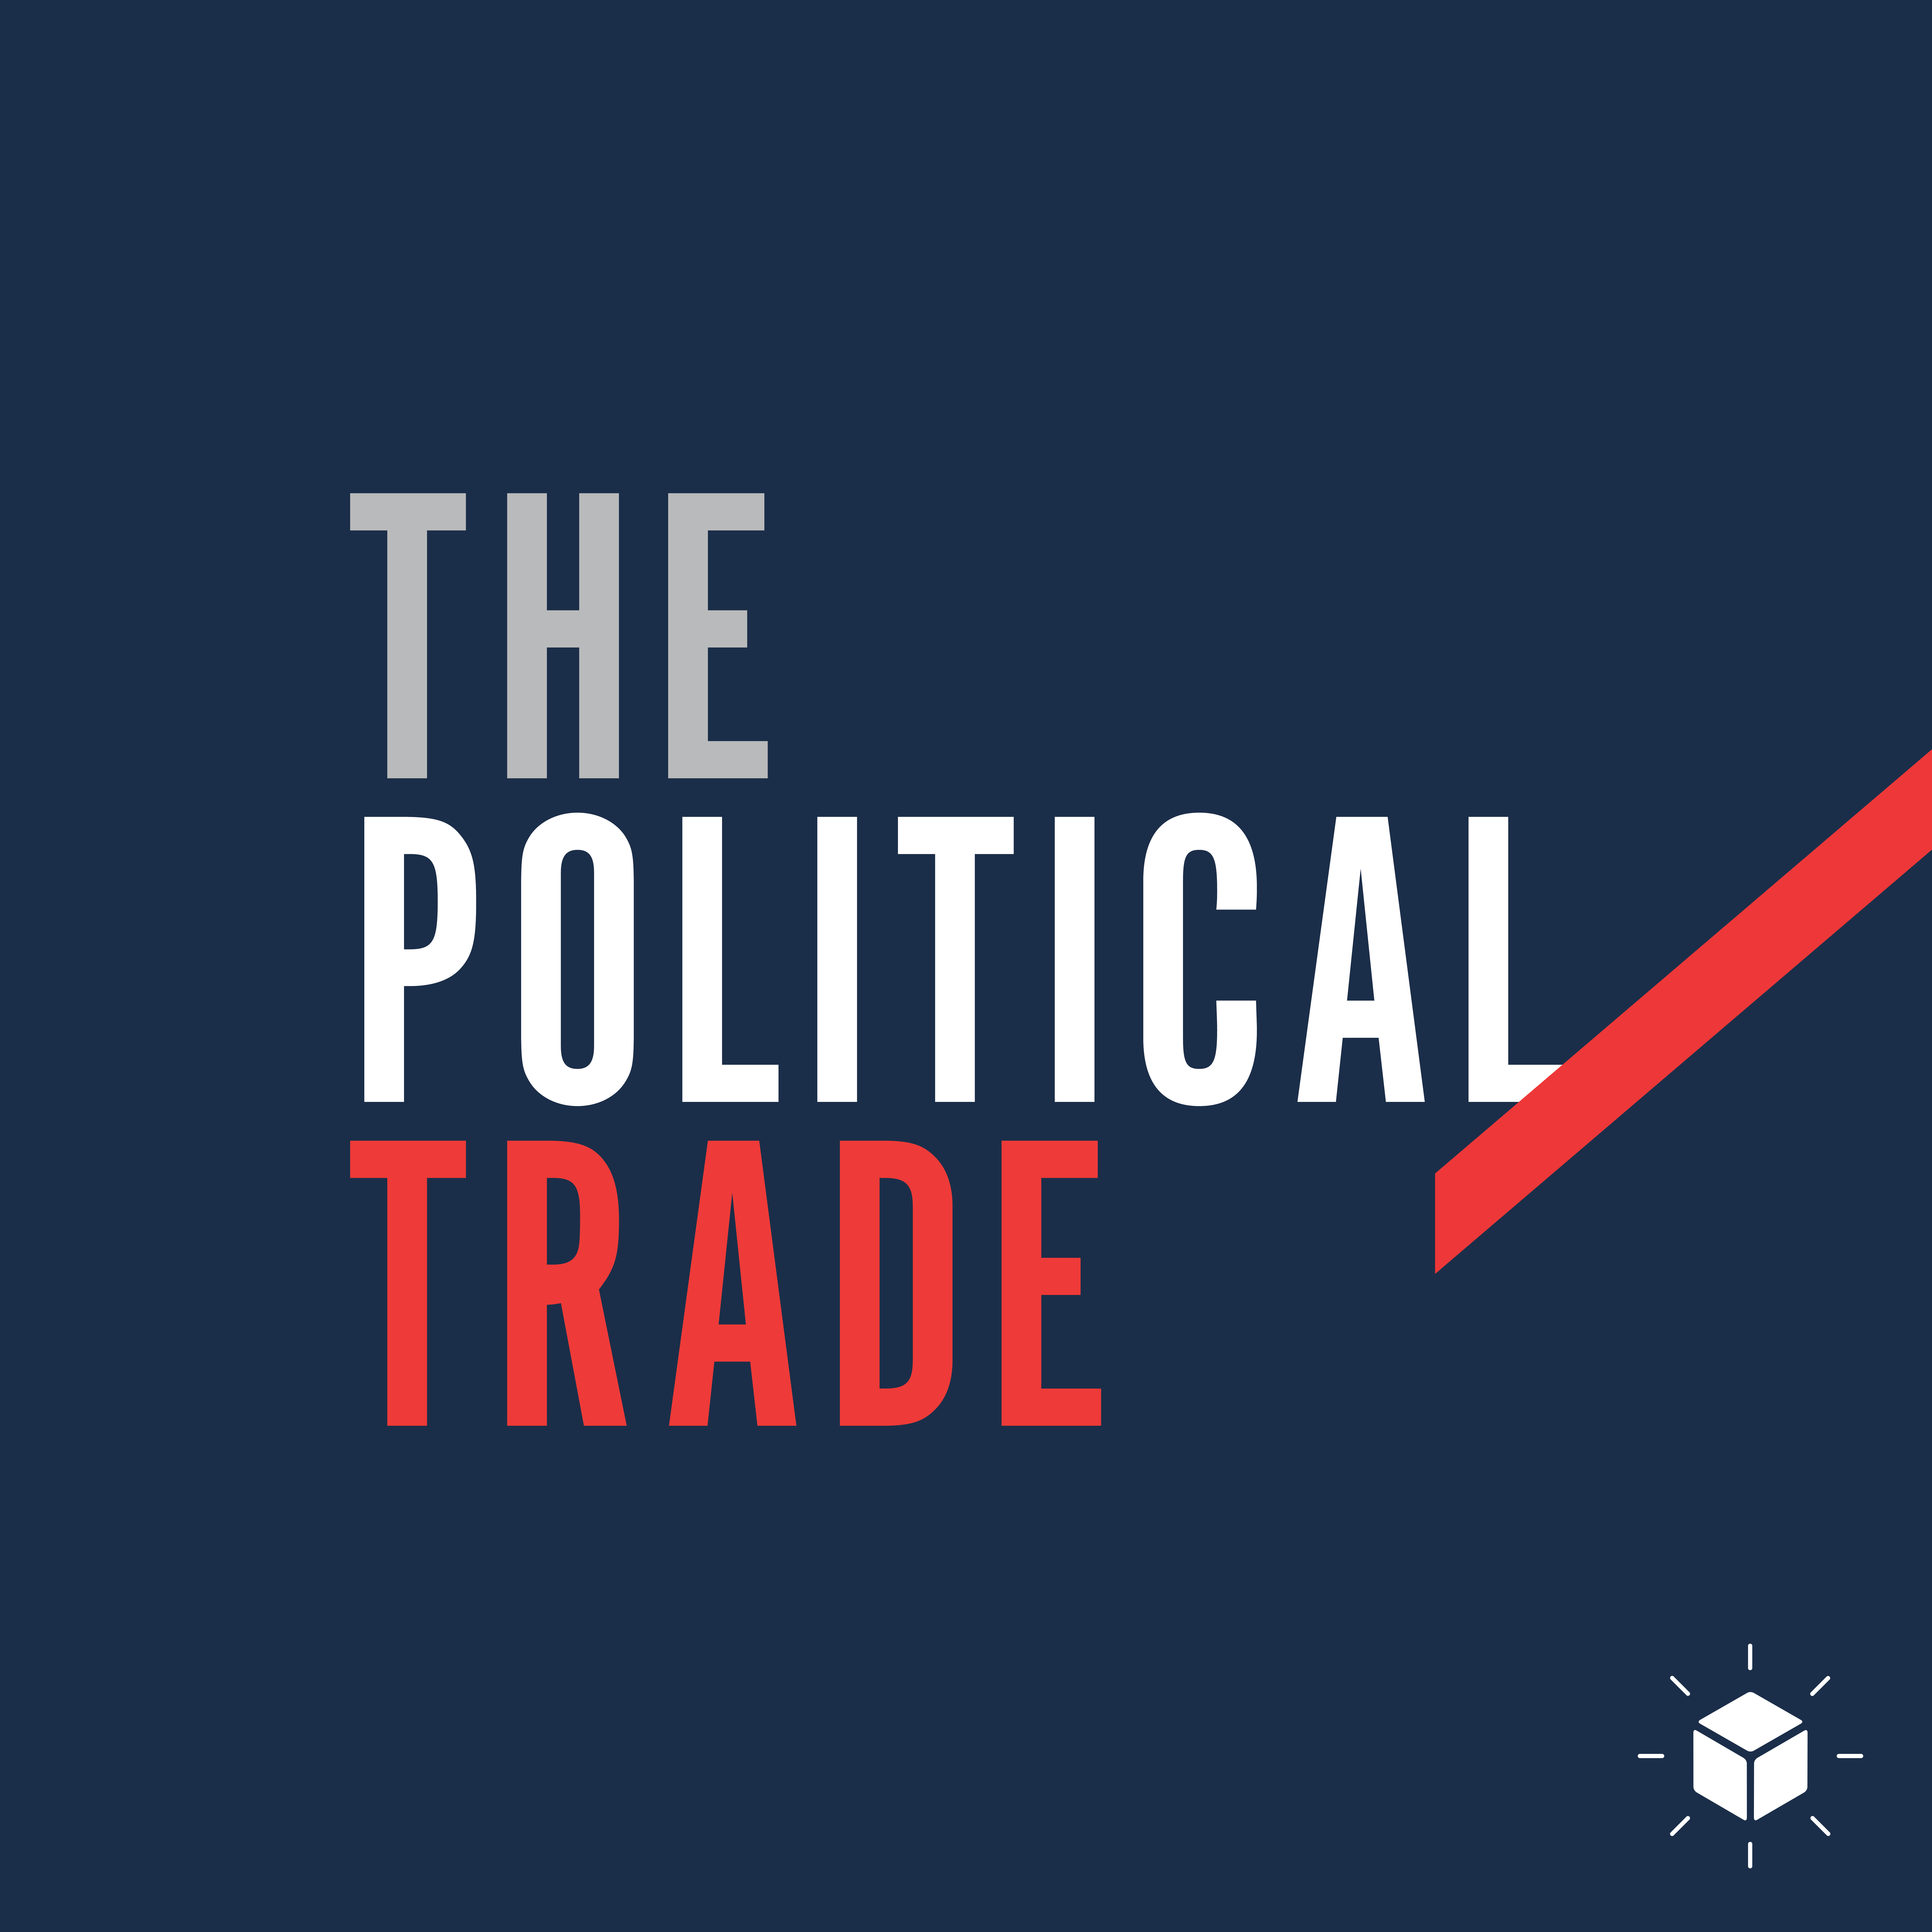 The Political Trade show art